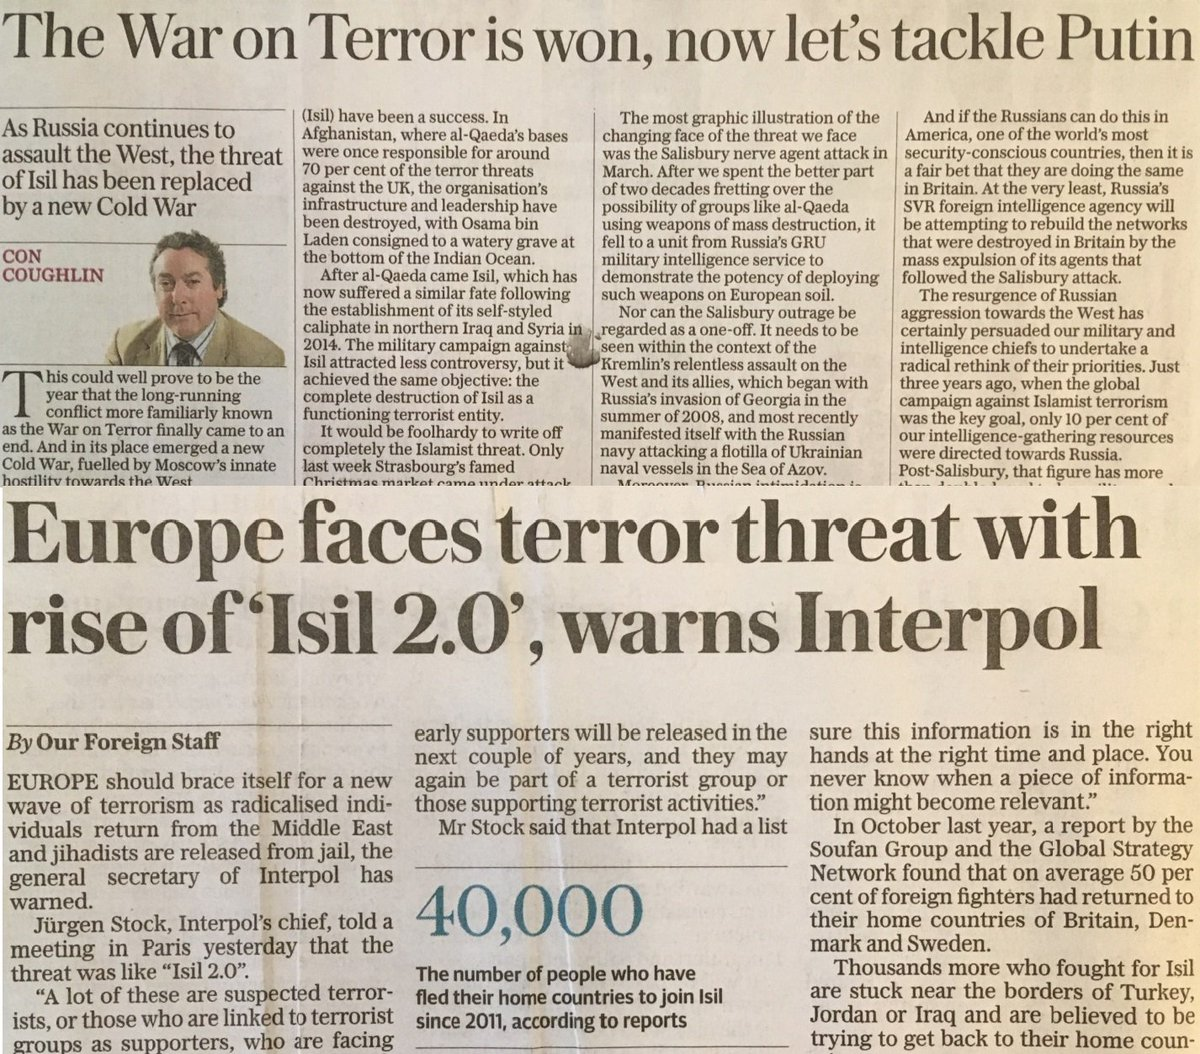 War on Terror is won AND lost in single edition of the Daily Telegraph